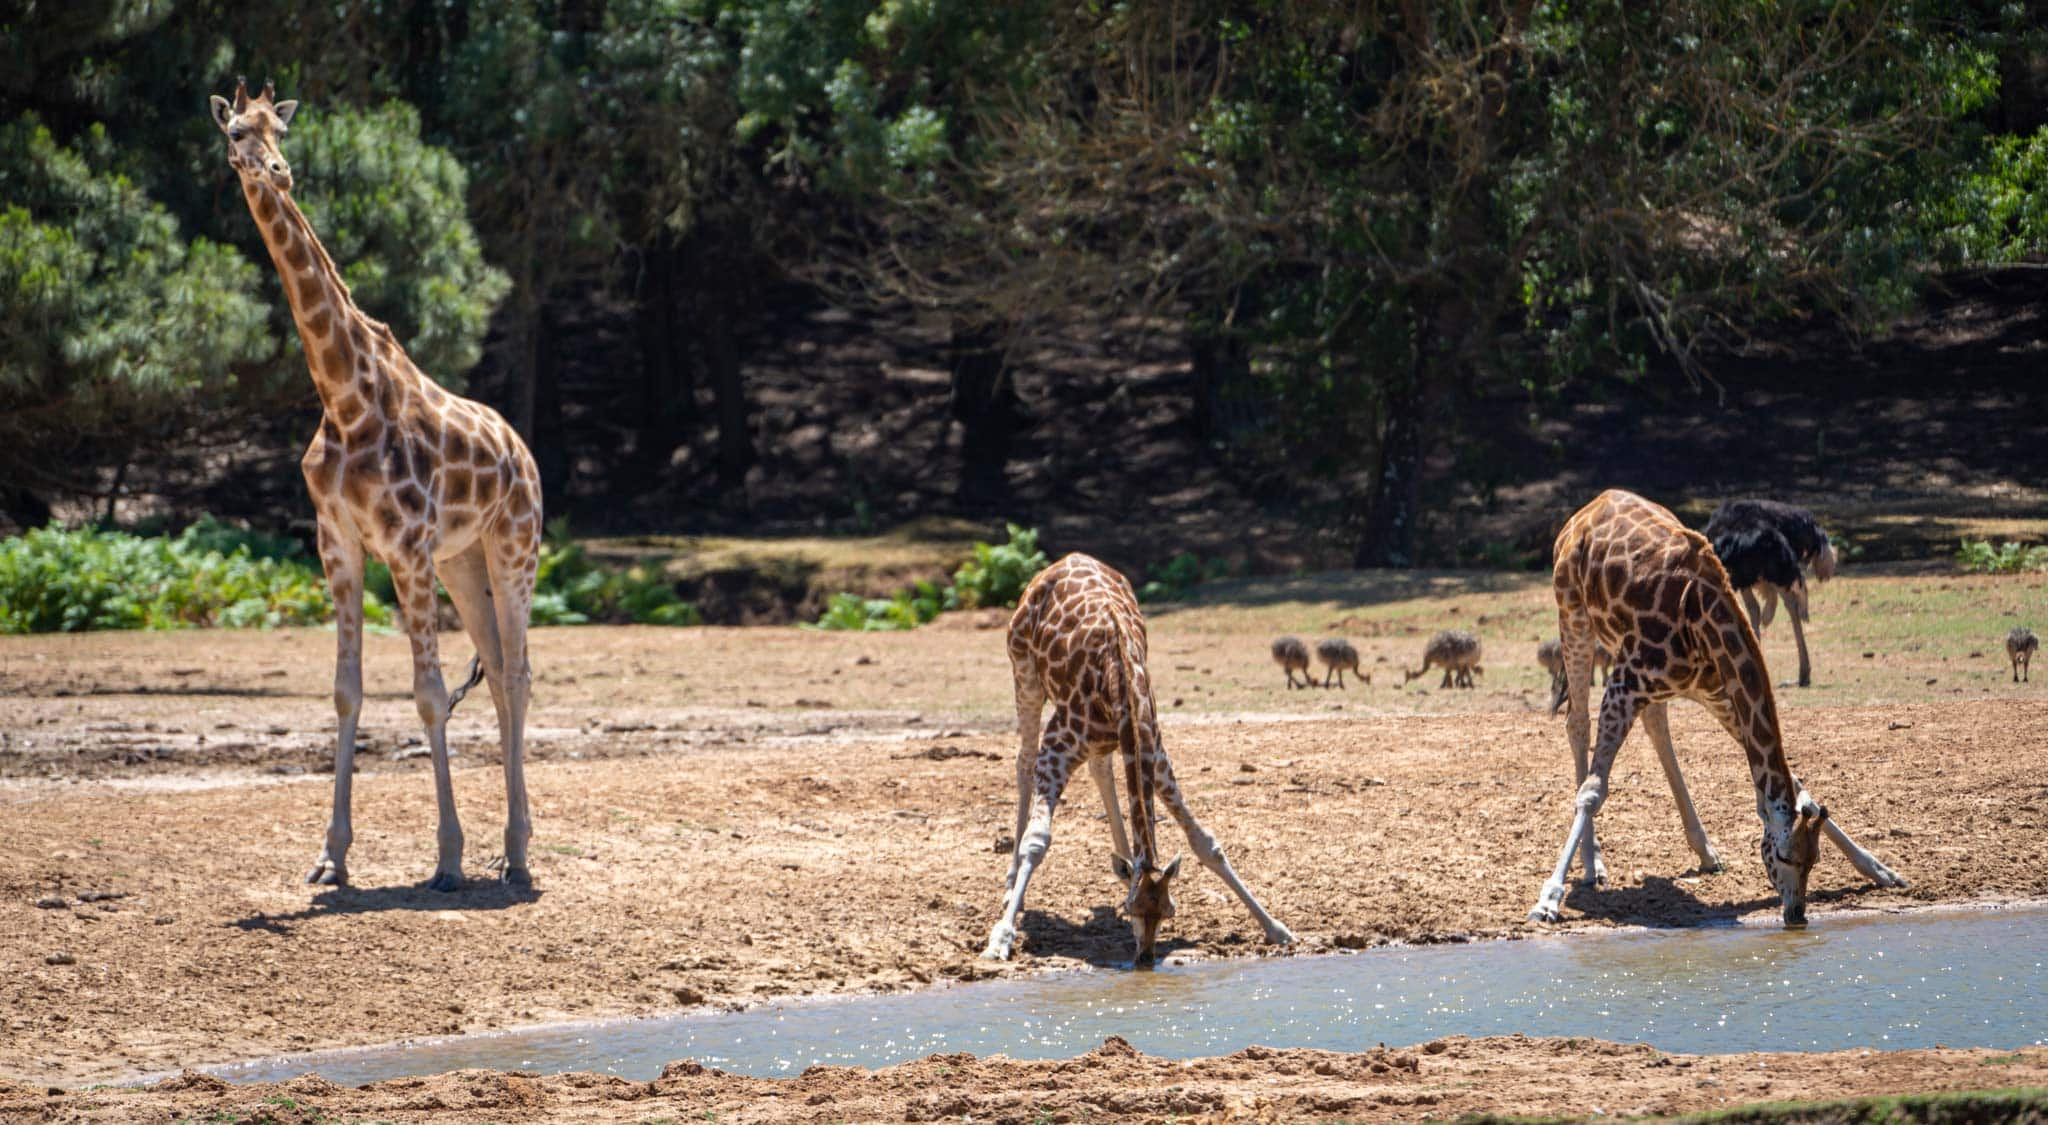 Bodeca safari park provides an alternative to the beaches